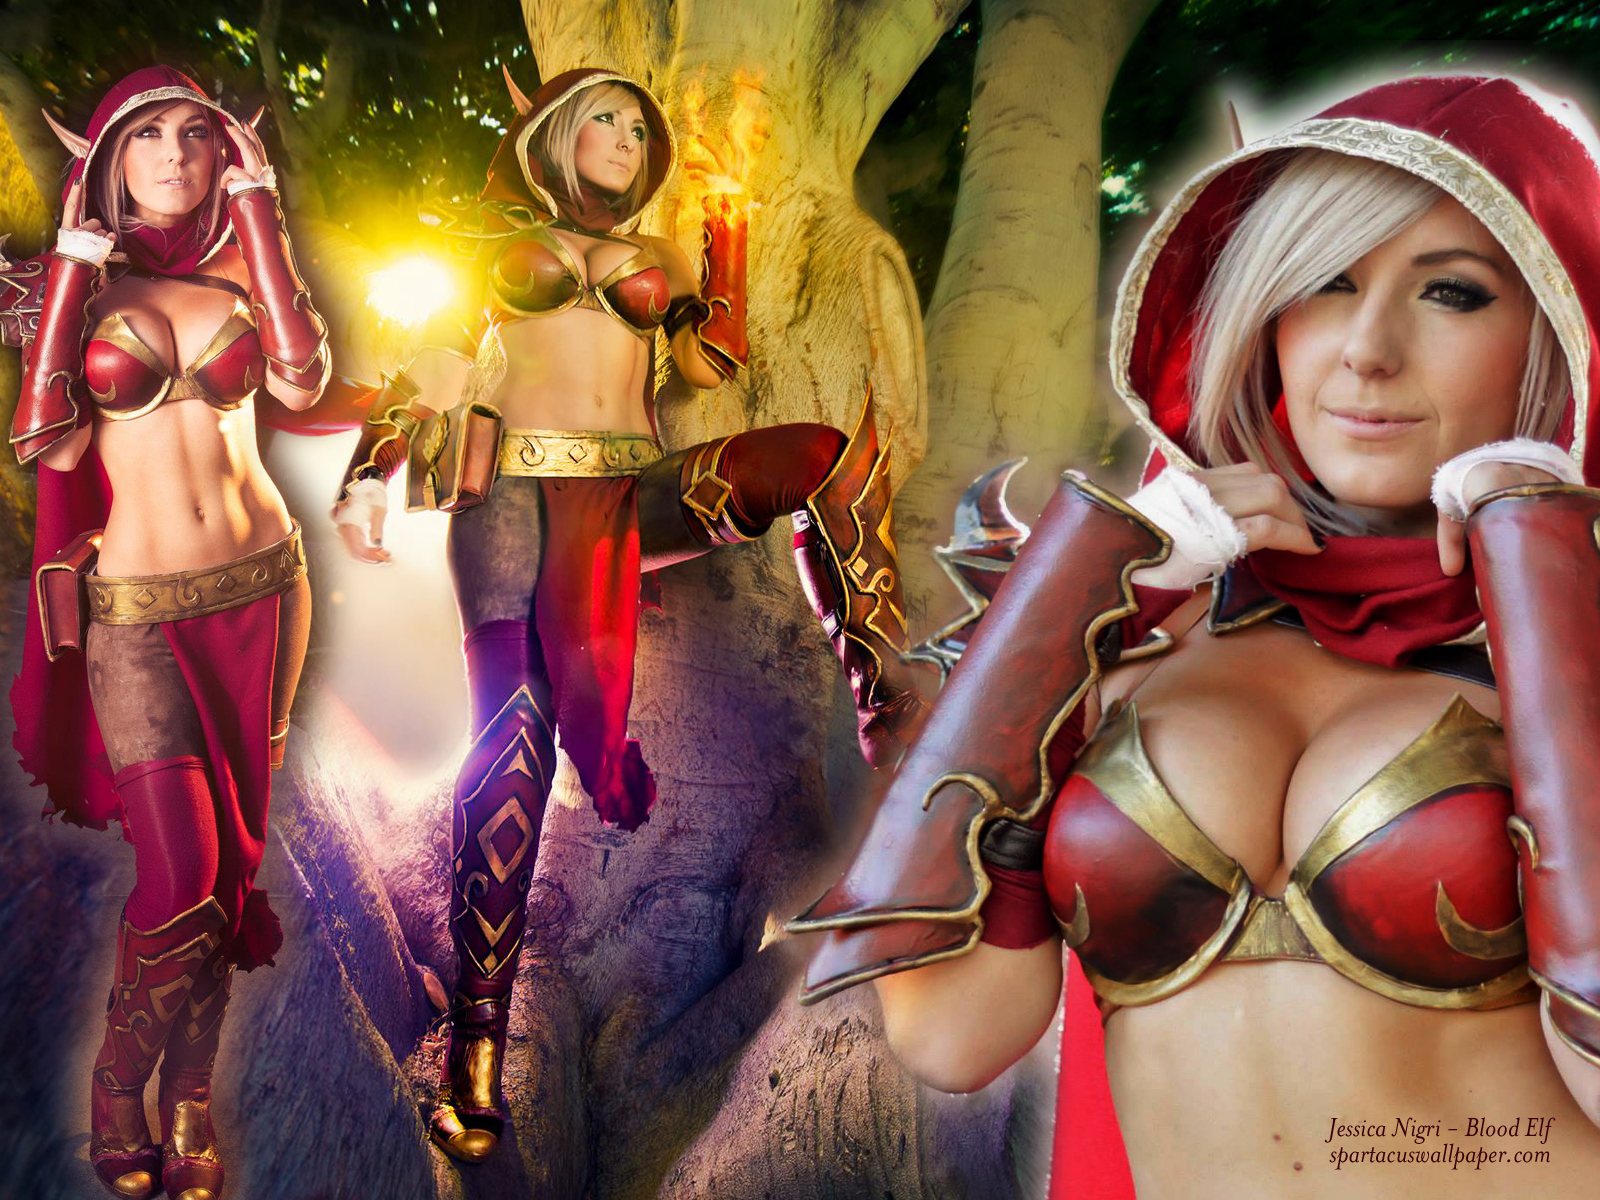 Hot blood elf picture naked picture